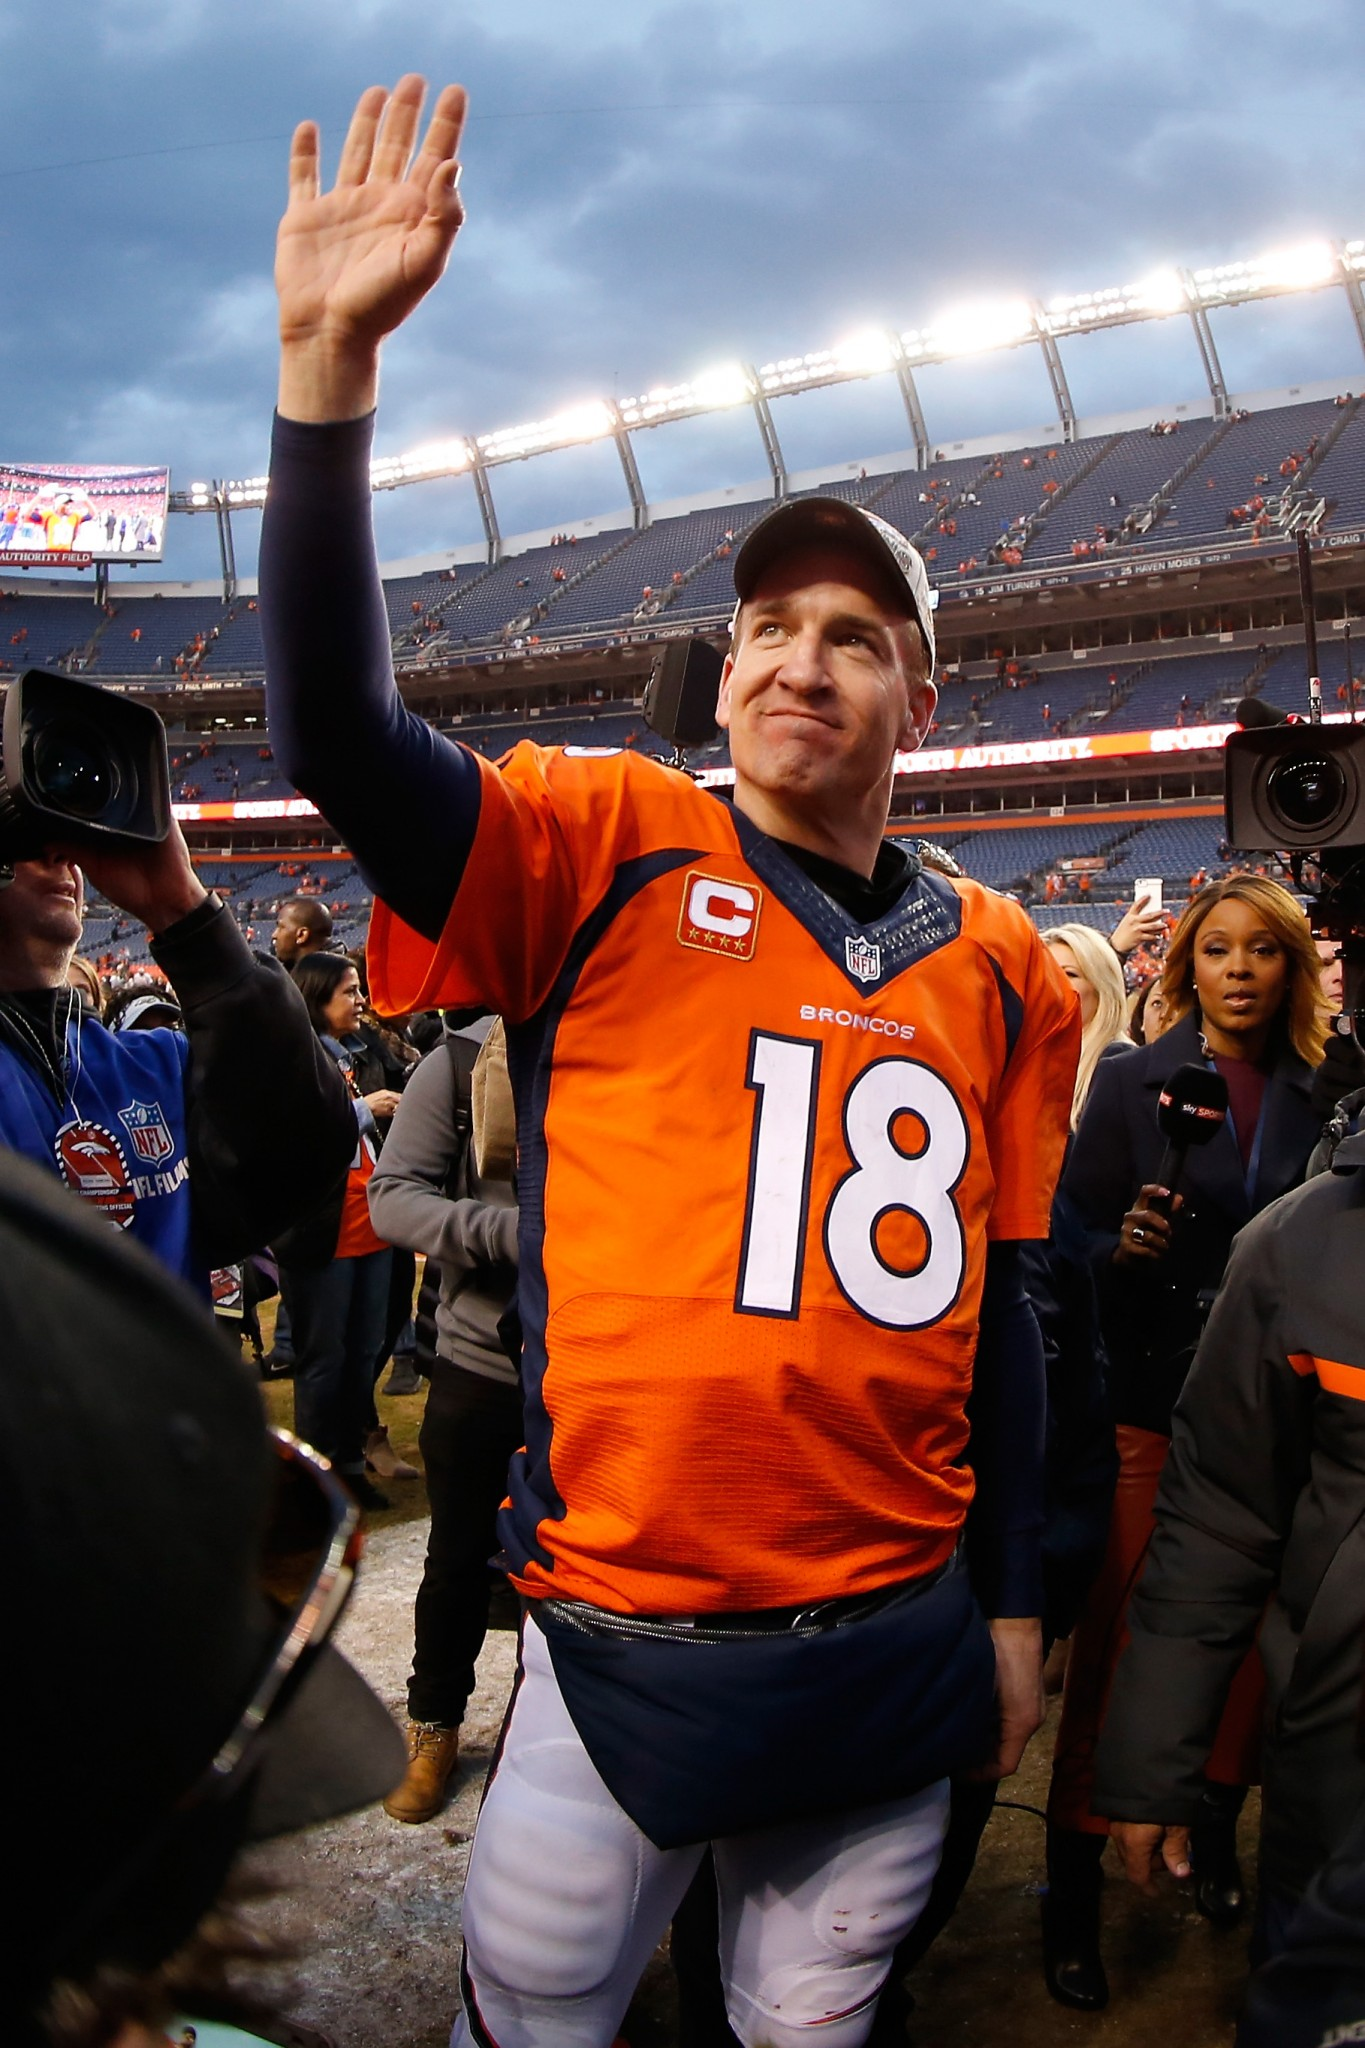 The main Manning